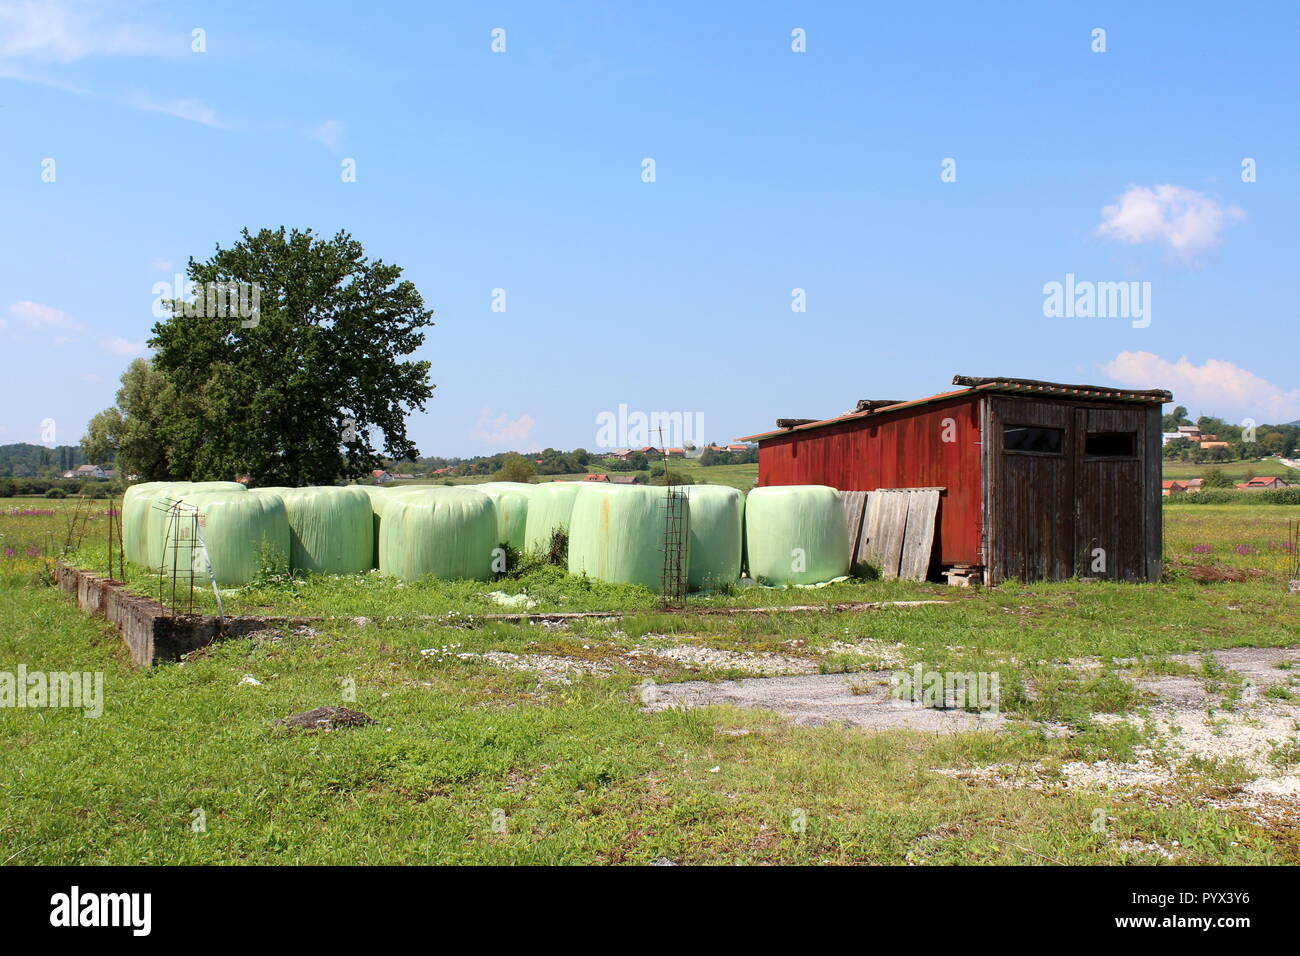 Hay bales wrapped in plastic left on unfinished concrete foundation next to wooden garage used as garden shed for storing tools - Stock Image